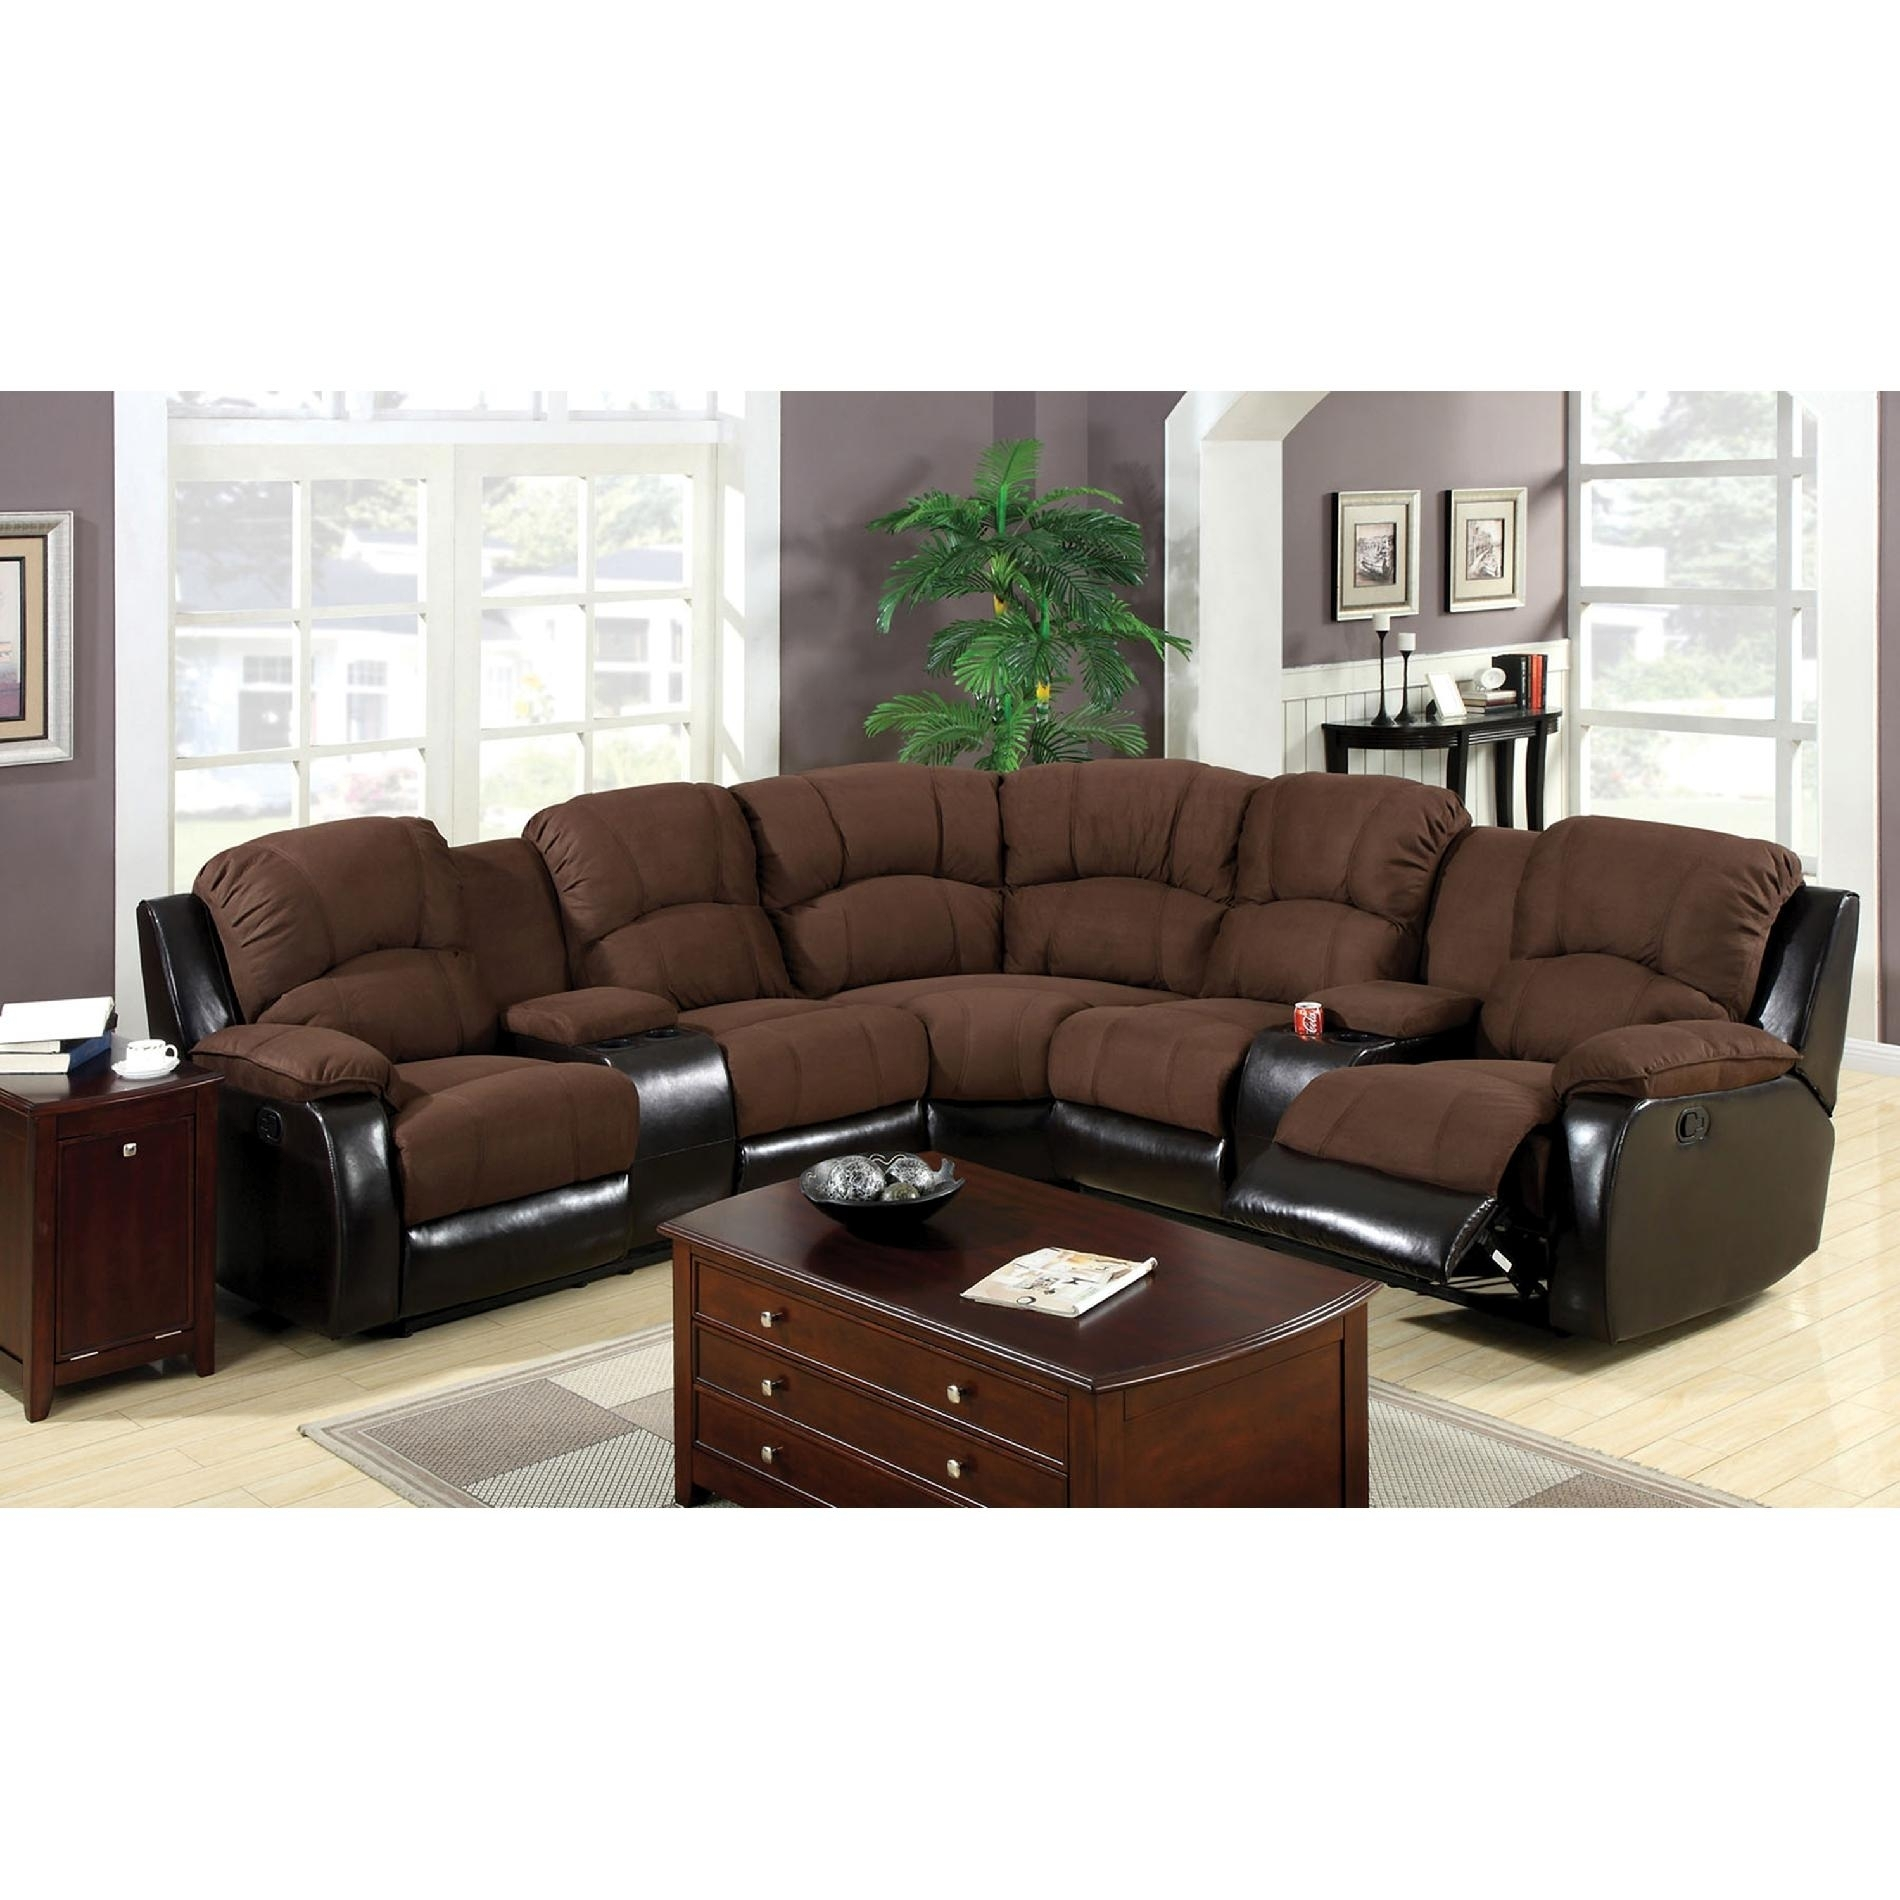 Brilliant Kmart Sectional Sofa – Buildsimplehome With Kmart Sectional Sofas (View 2 of 10)